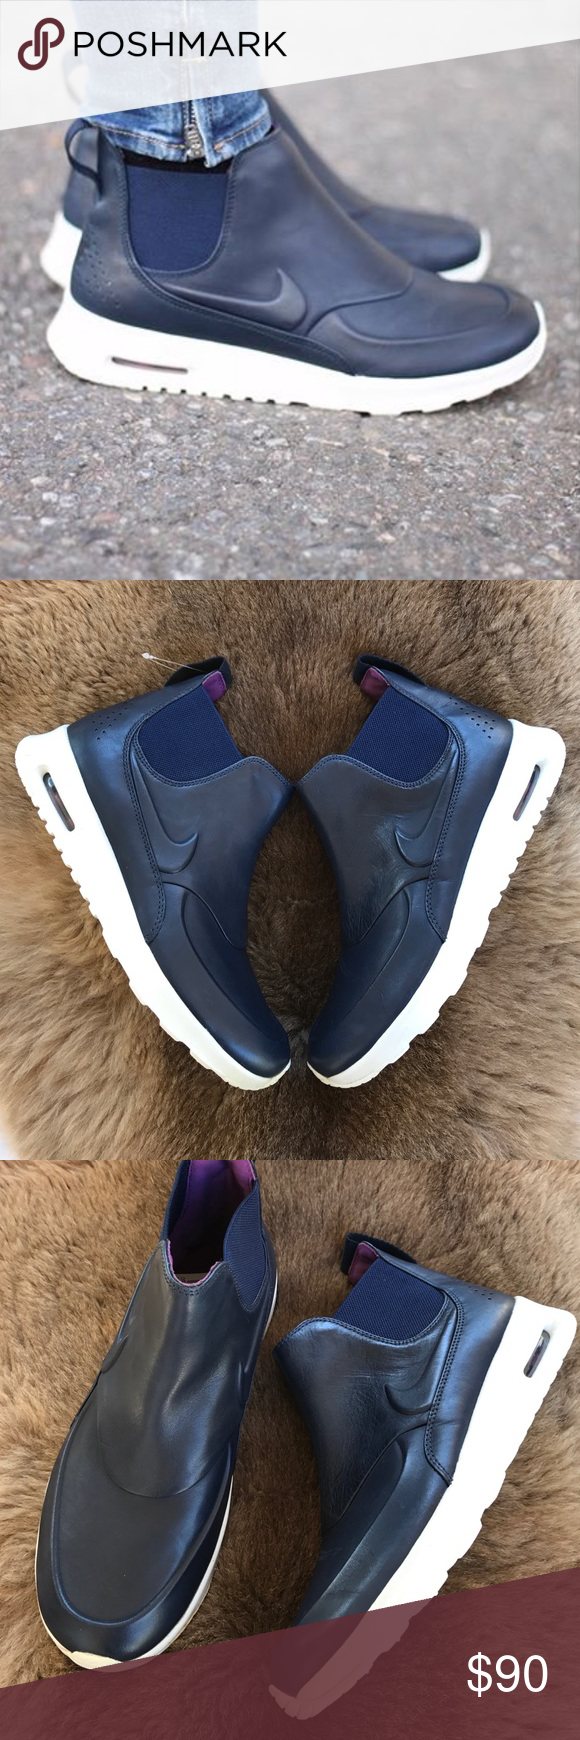 6b4bdd9473 Lighter · Running Shoes · Silhouette · Meet · NWT Nike Thea mid navy Brand  new no box lid ,no trades price is firm